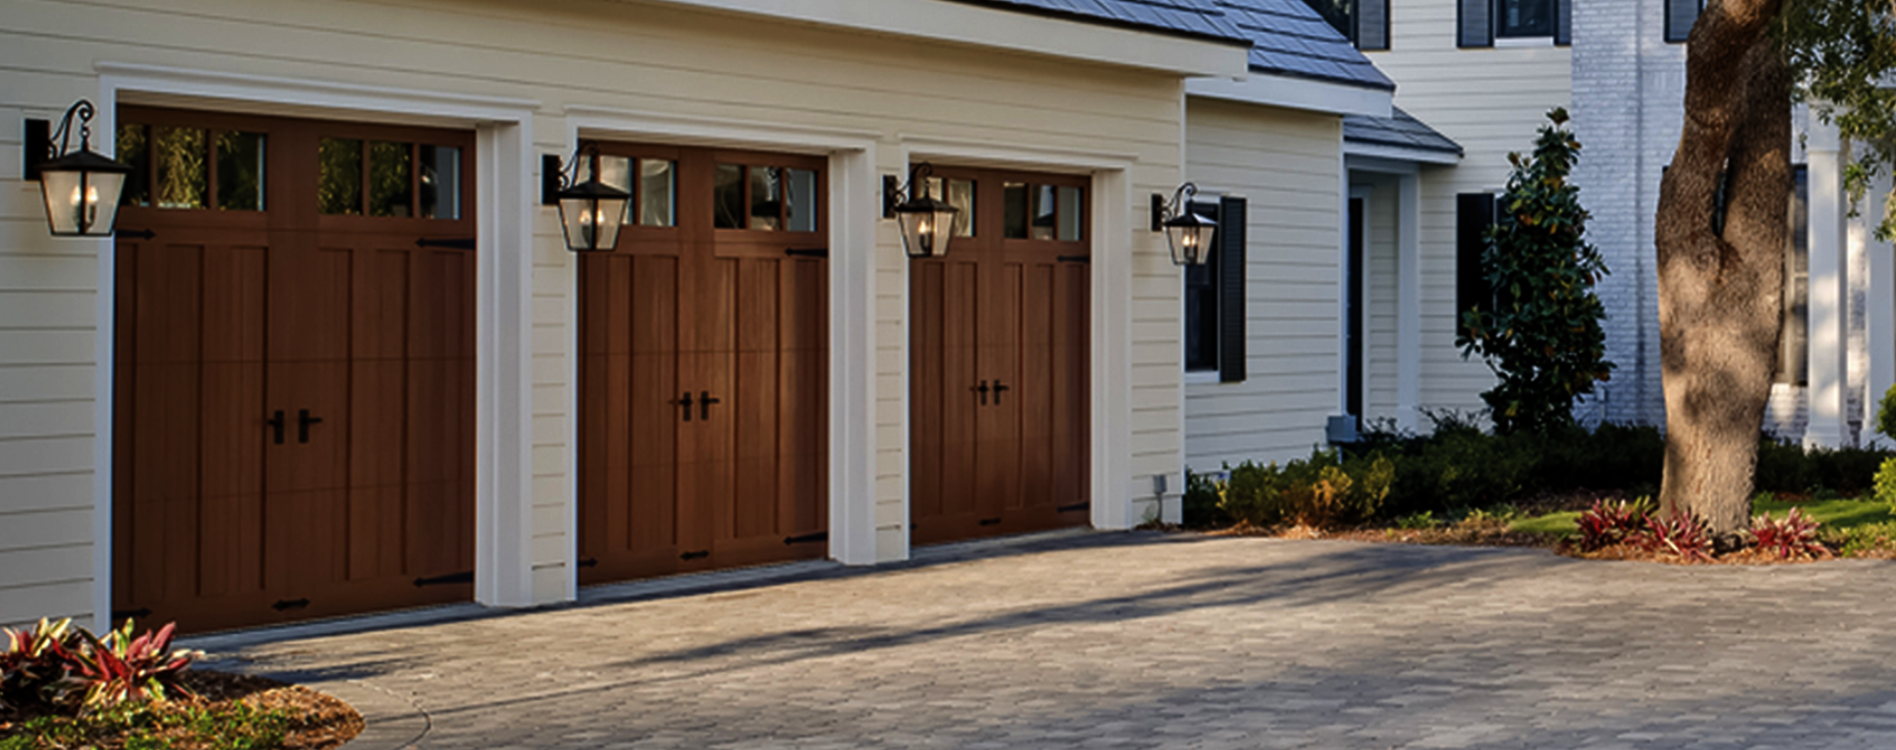 door for ideas com tinfishclematis wood spectacular garage avante doors gates and castle photos clopay of review best look wall great reviews